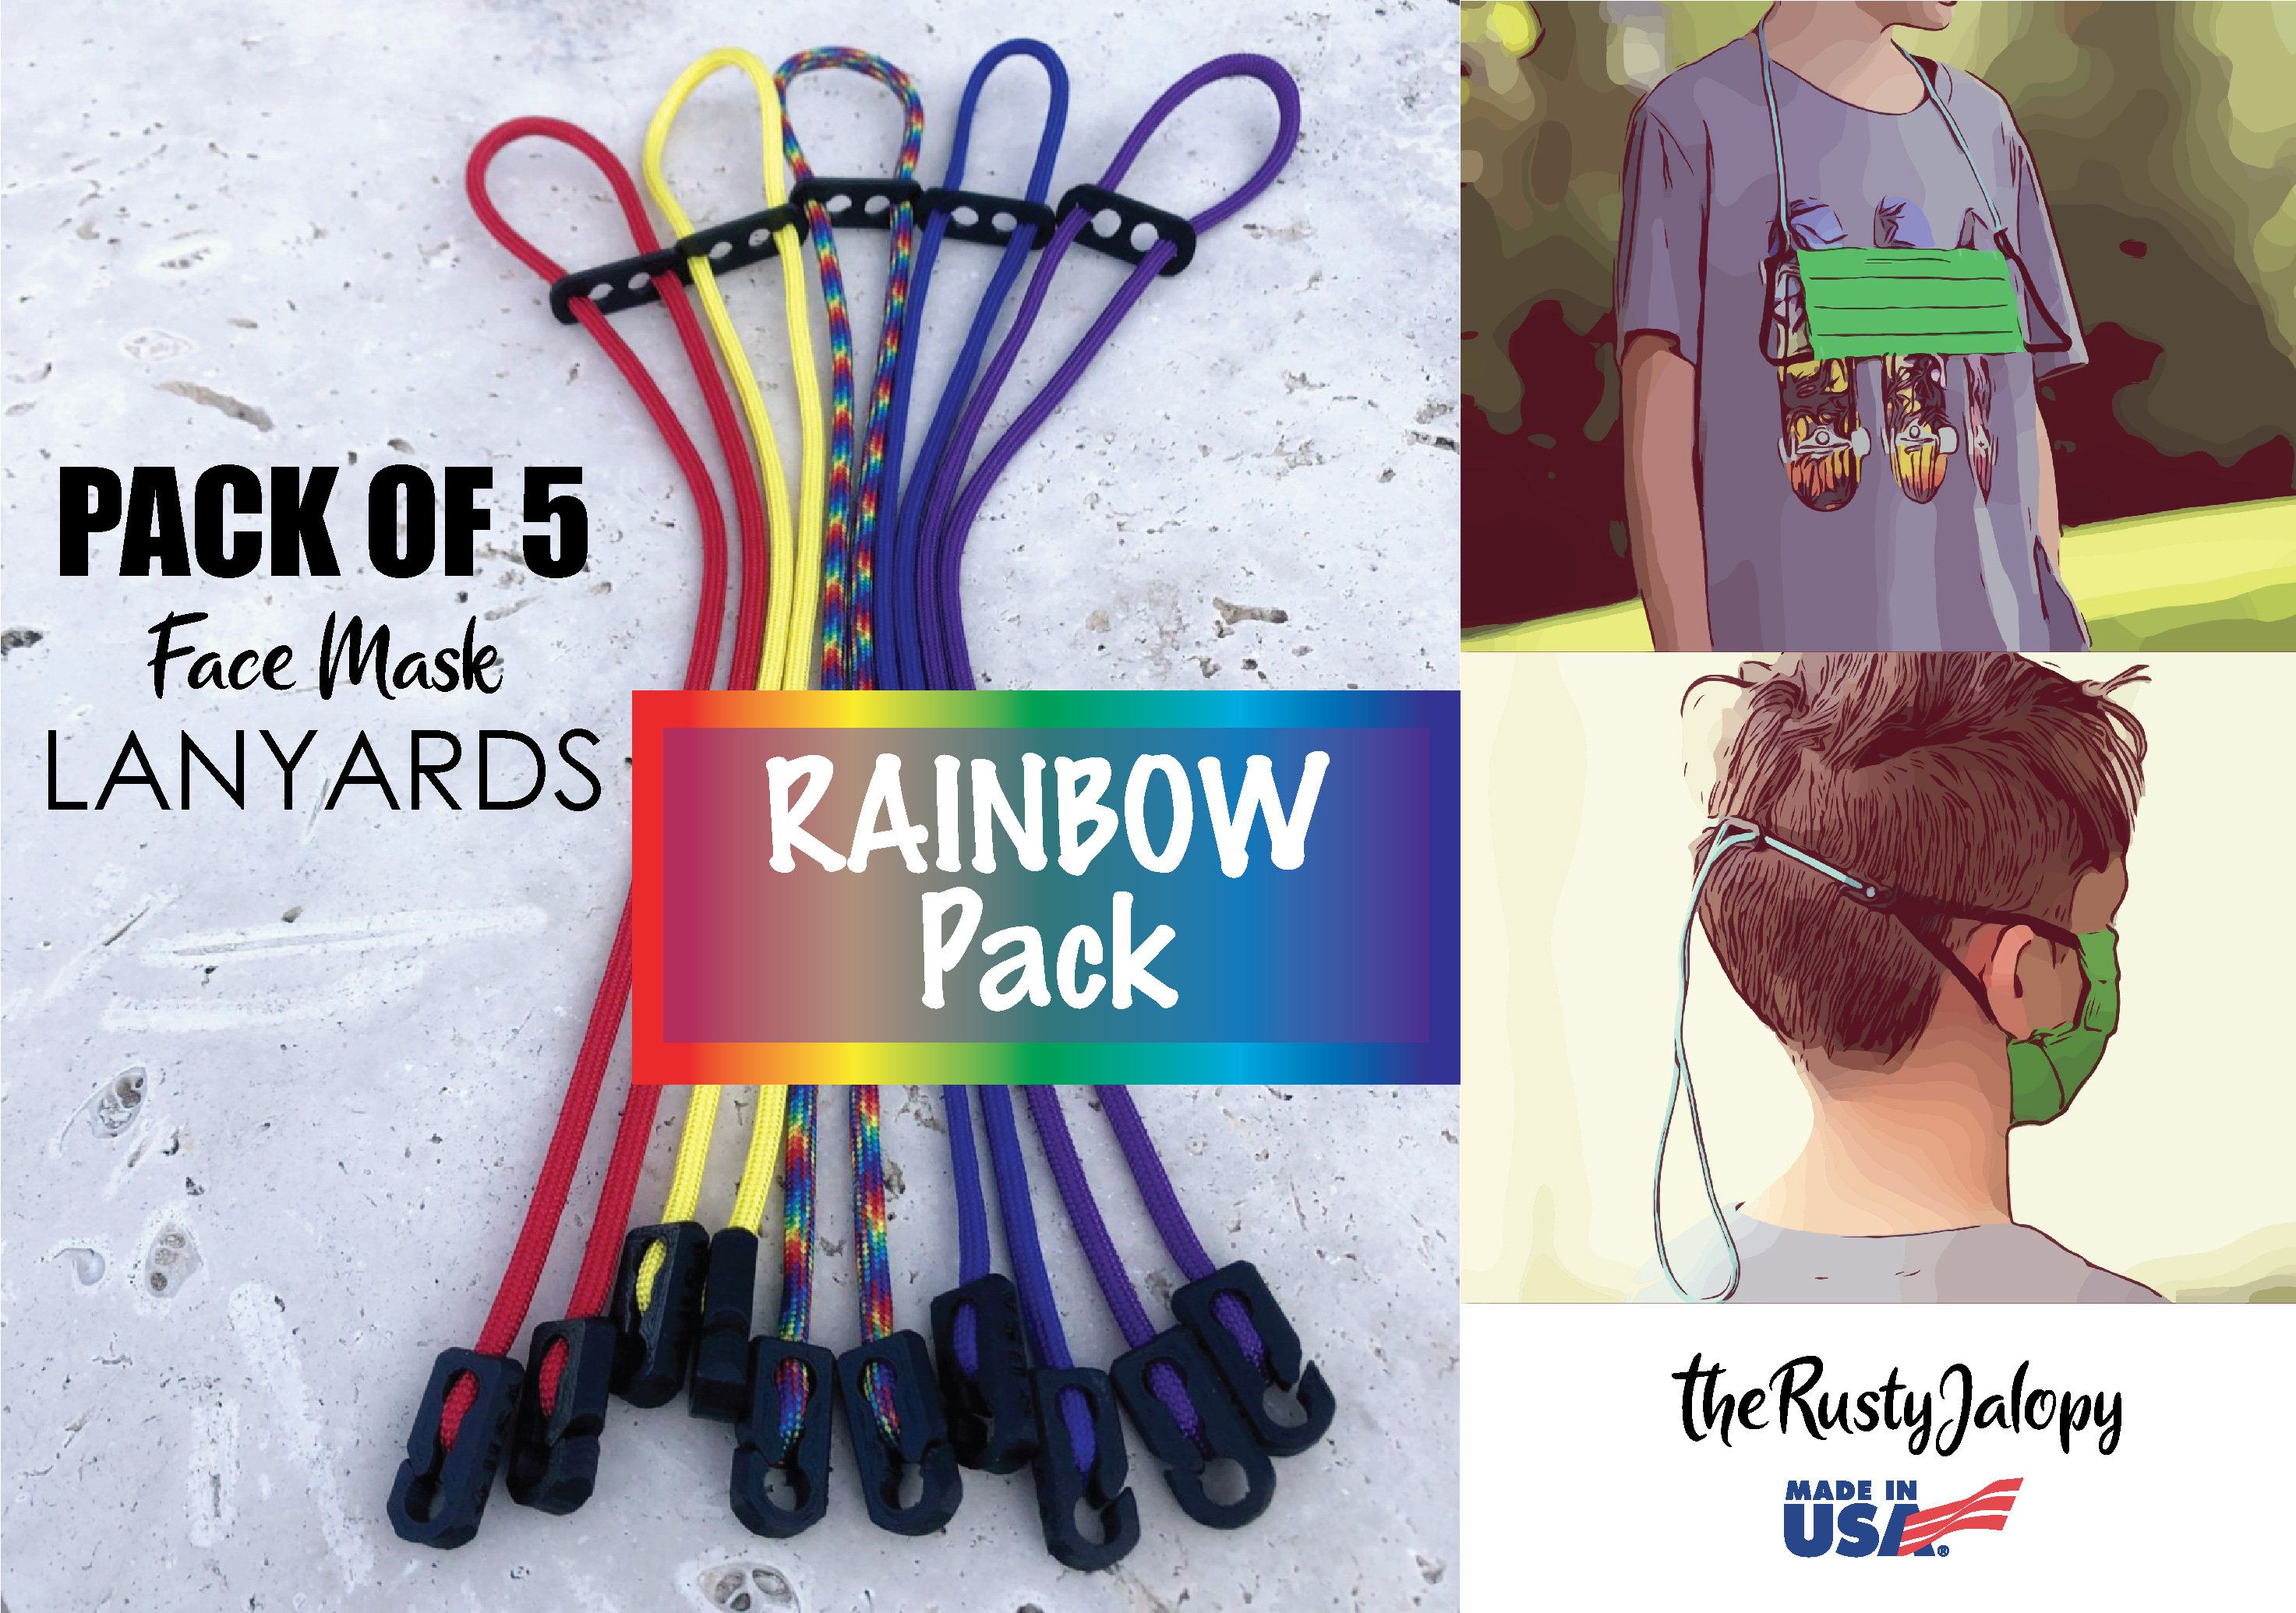 RAINBOW Pack of 5 Lanyards 24 Mask Strap for Face Masks